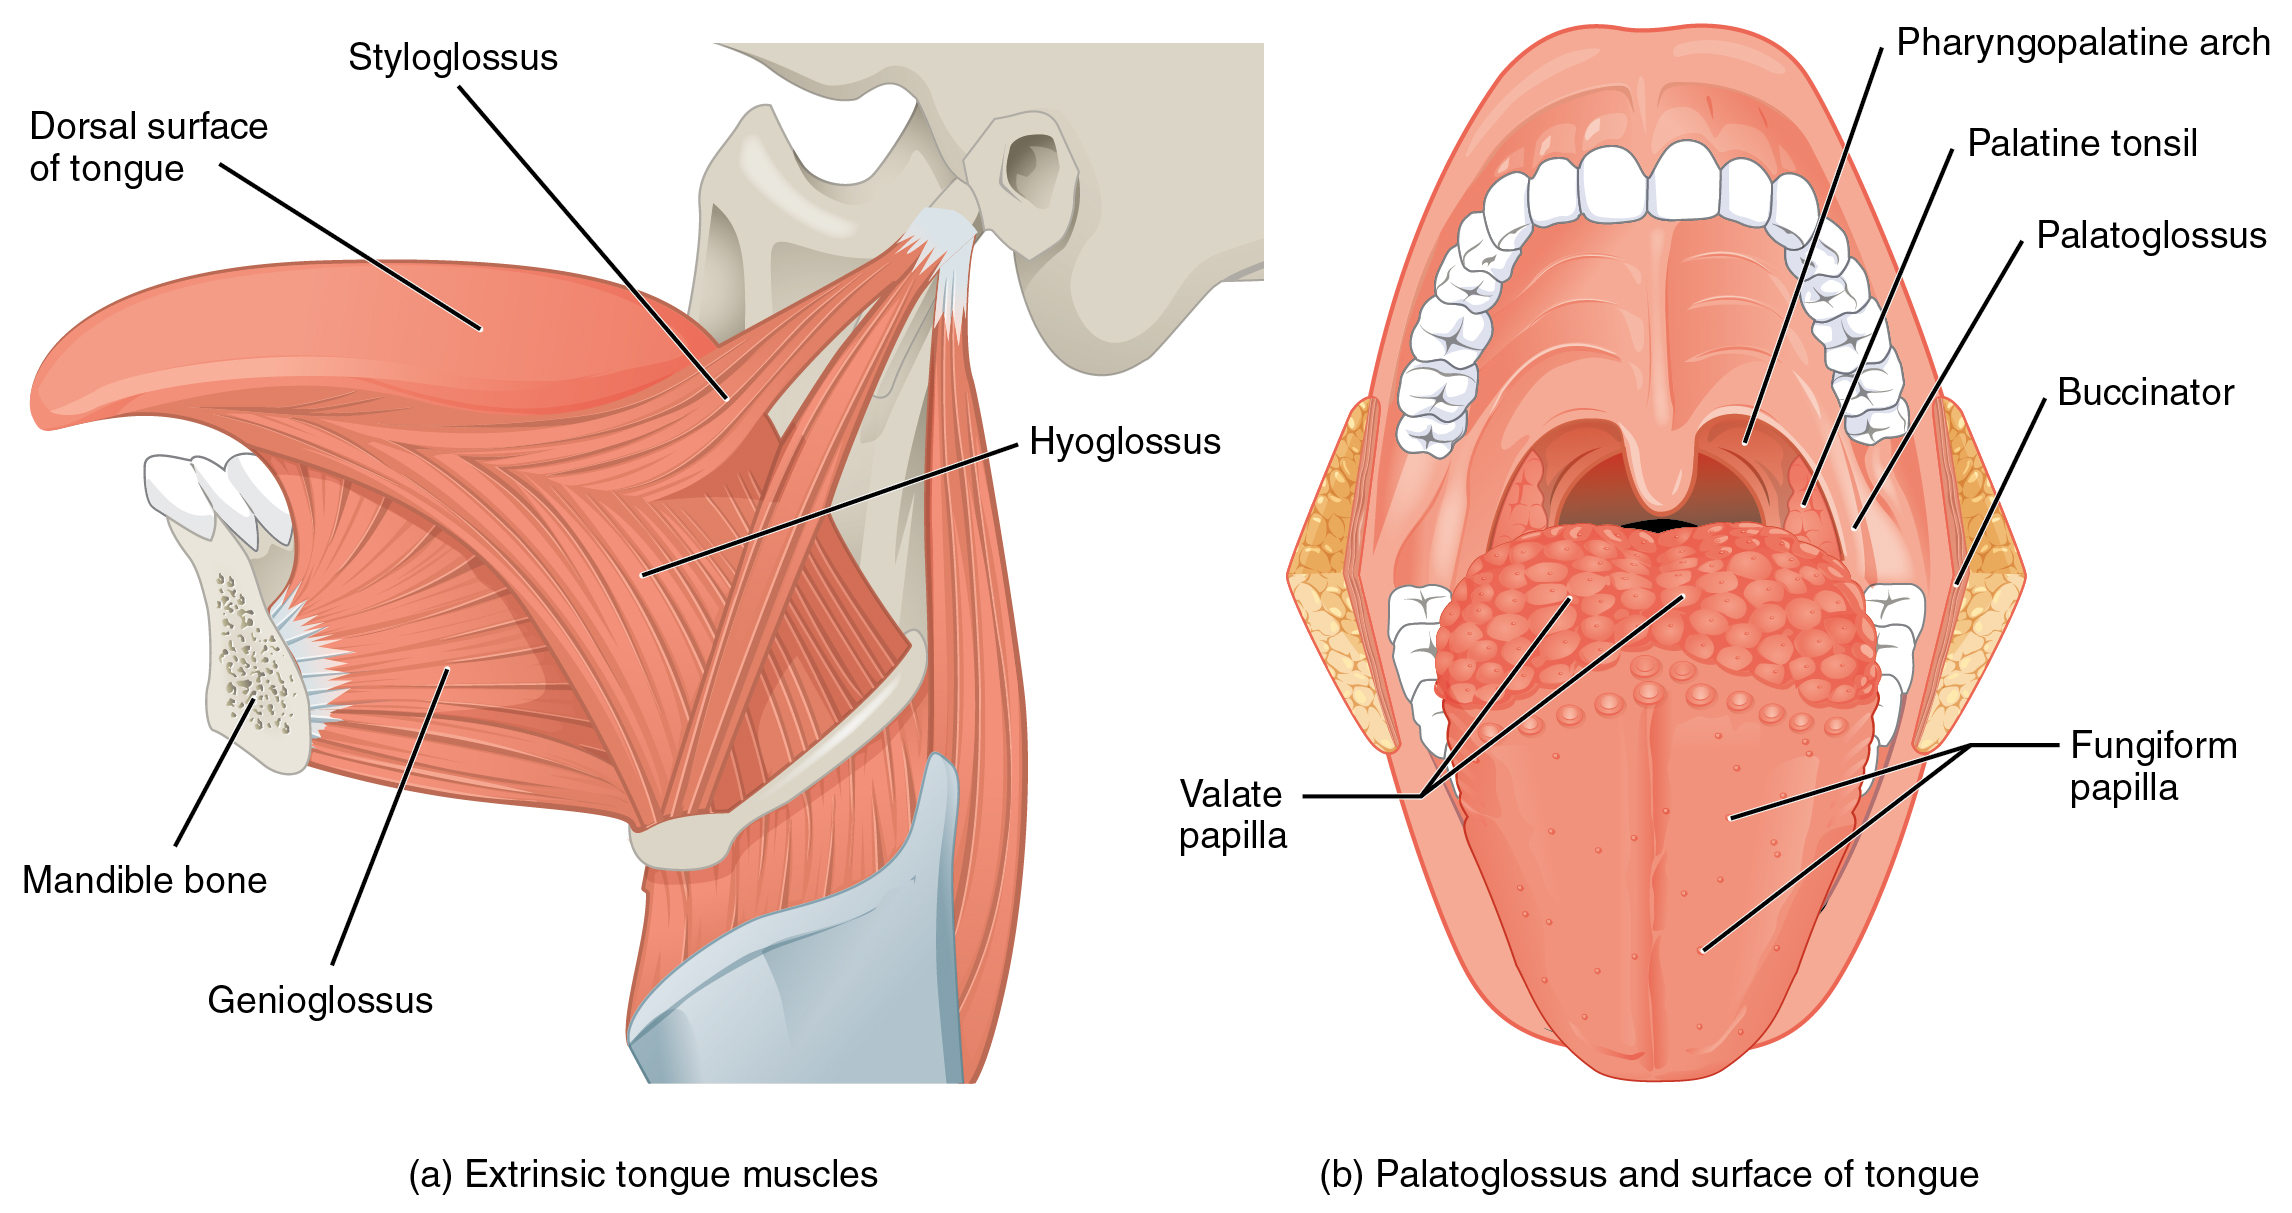 The image shows the extrinsic muscles of the tongue.